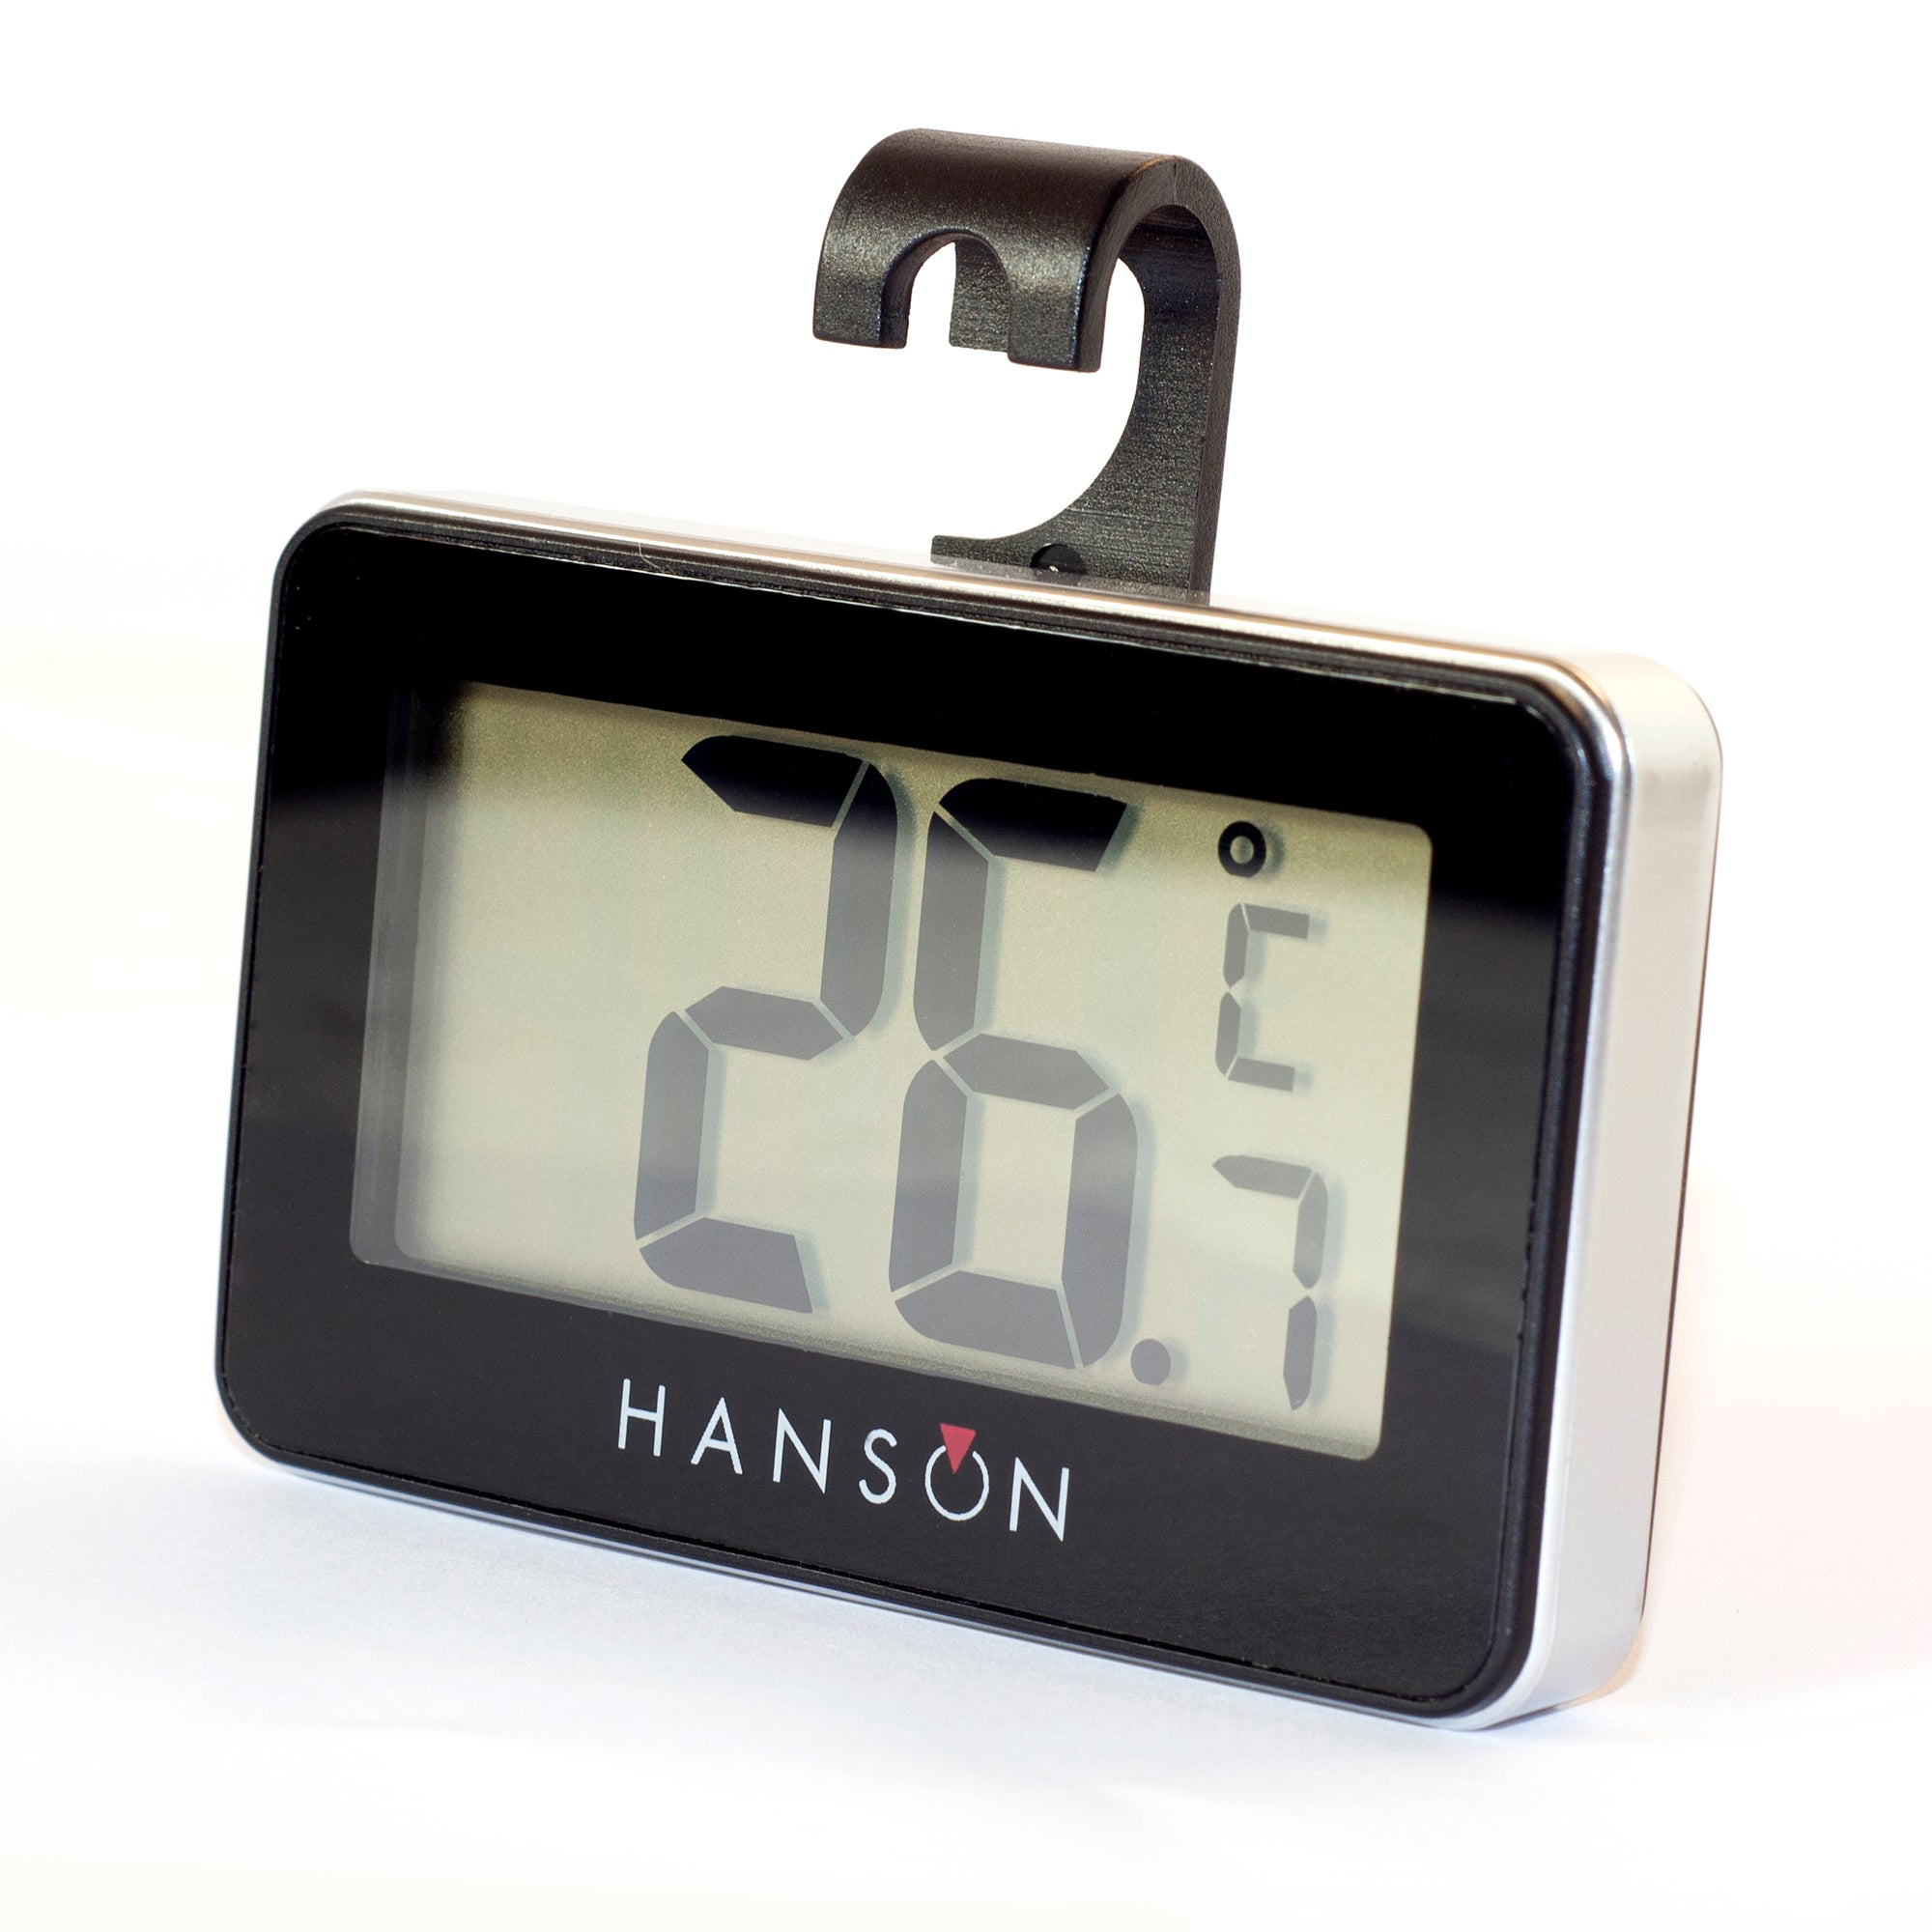 Hanson Fridge and Freezer Thermometer